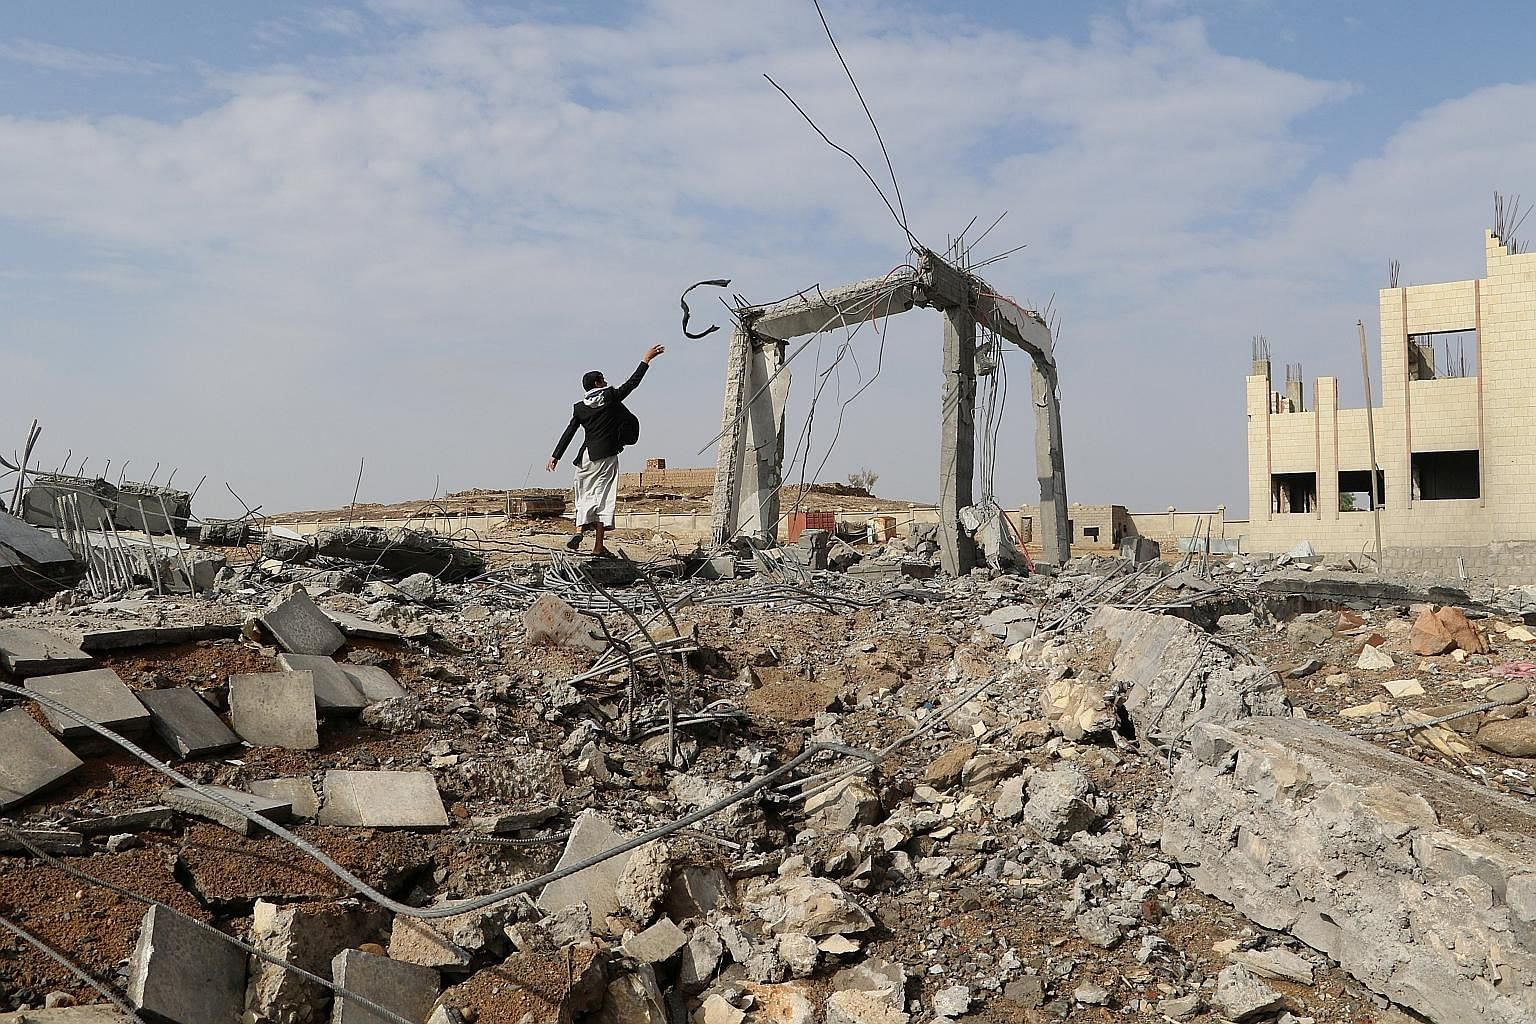 The ruins of a community college after an air strike in Saada, Yemen, last week. Democratic states are not more likely than their autocratic counterparts to employ air-only campaigns, but rich states - and by extension, militarily powerful states - a